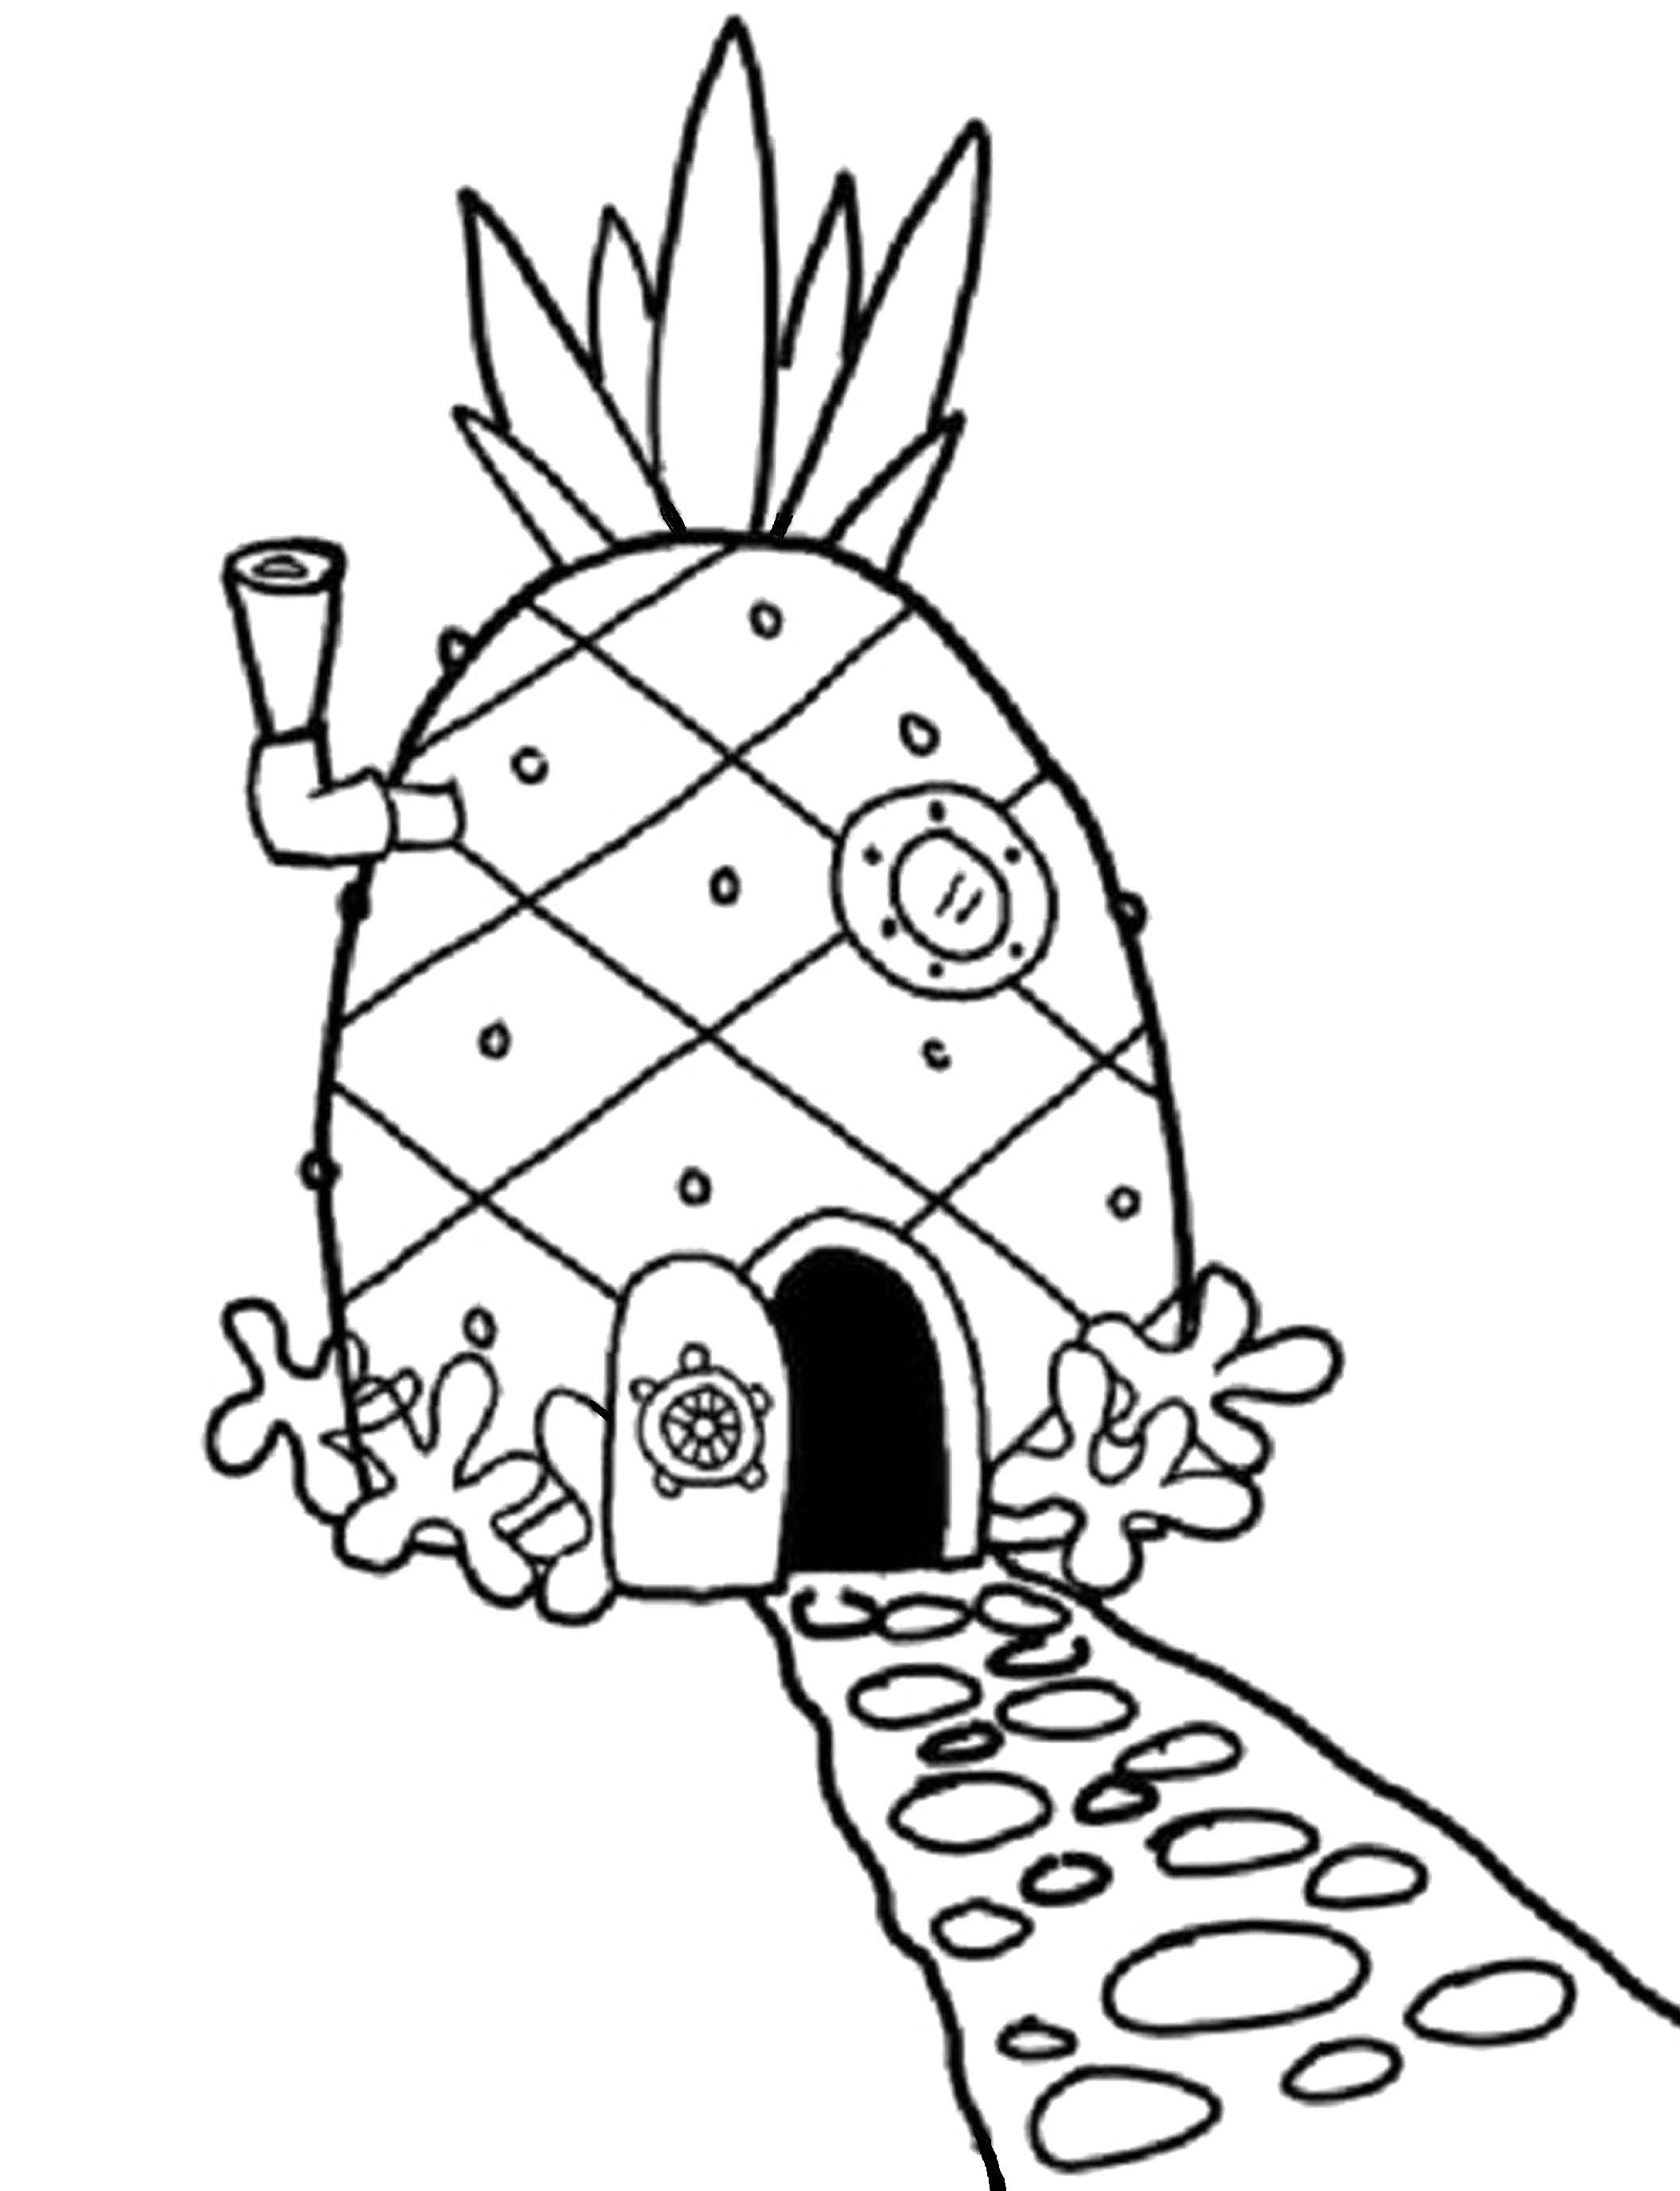 Spongebob House Coloring Pages Desene Animate Picturi